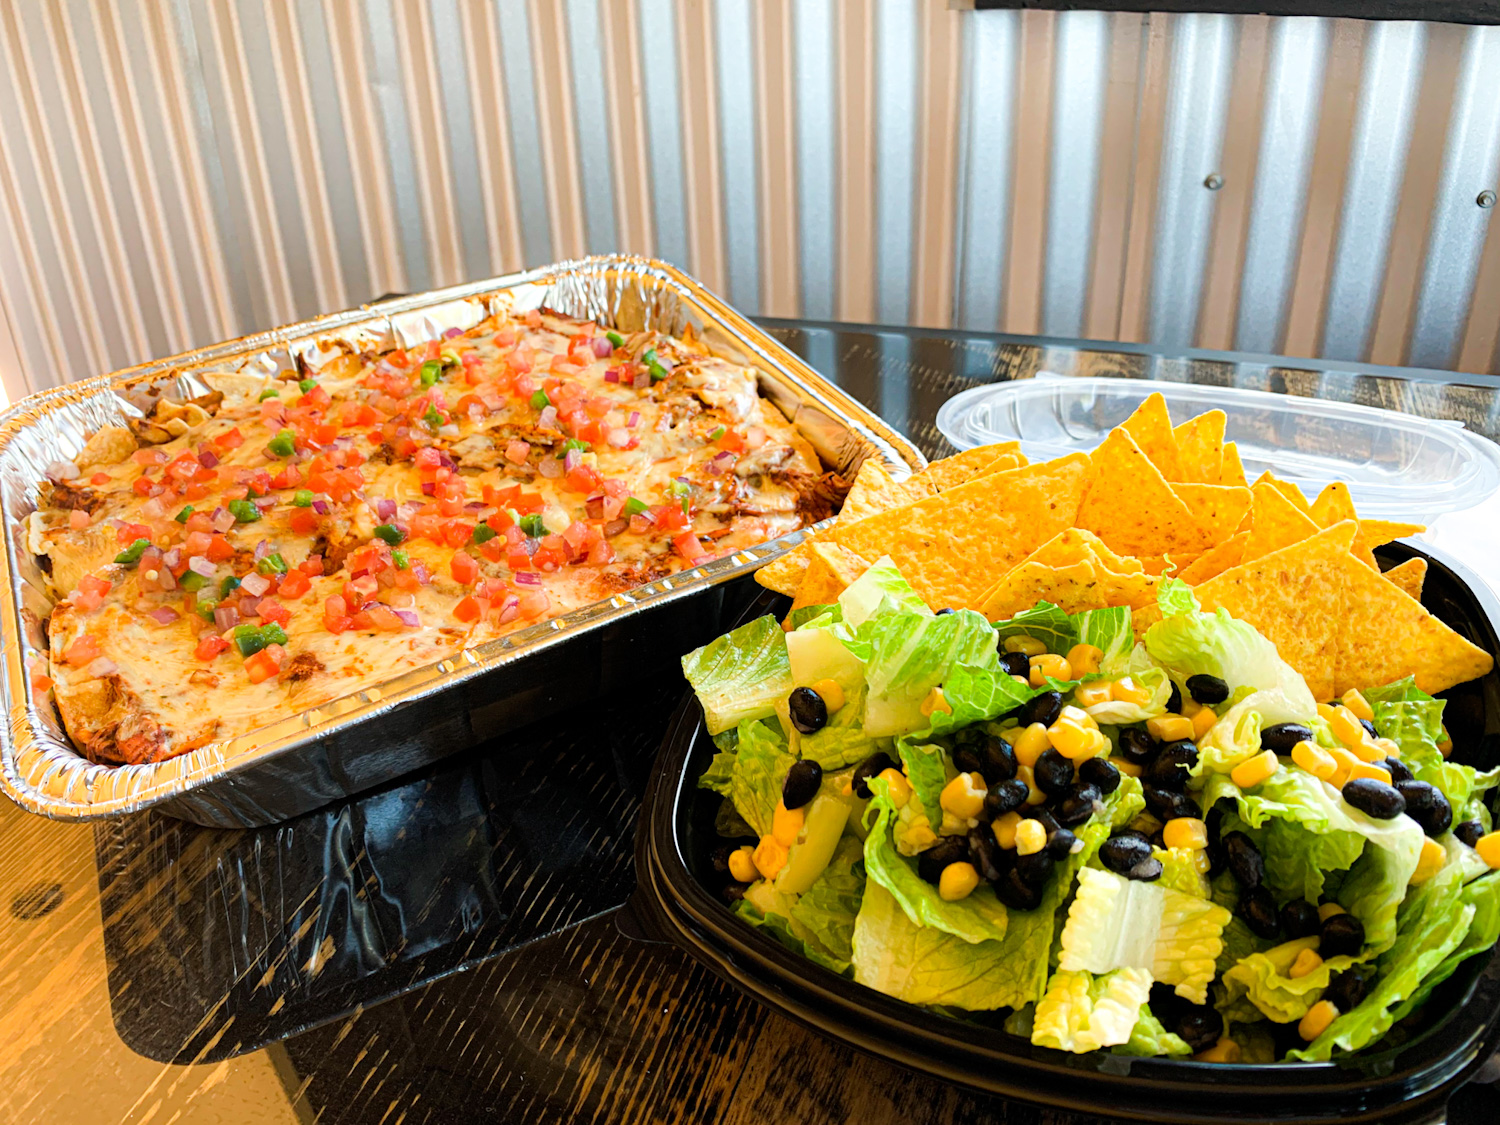 Backyard Tap House Take & Bake Chicken Enchilada Casserole | Florence, MT